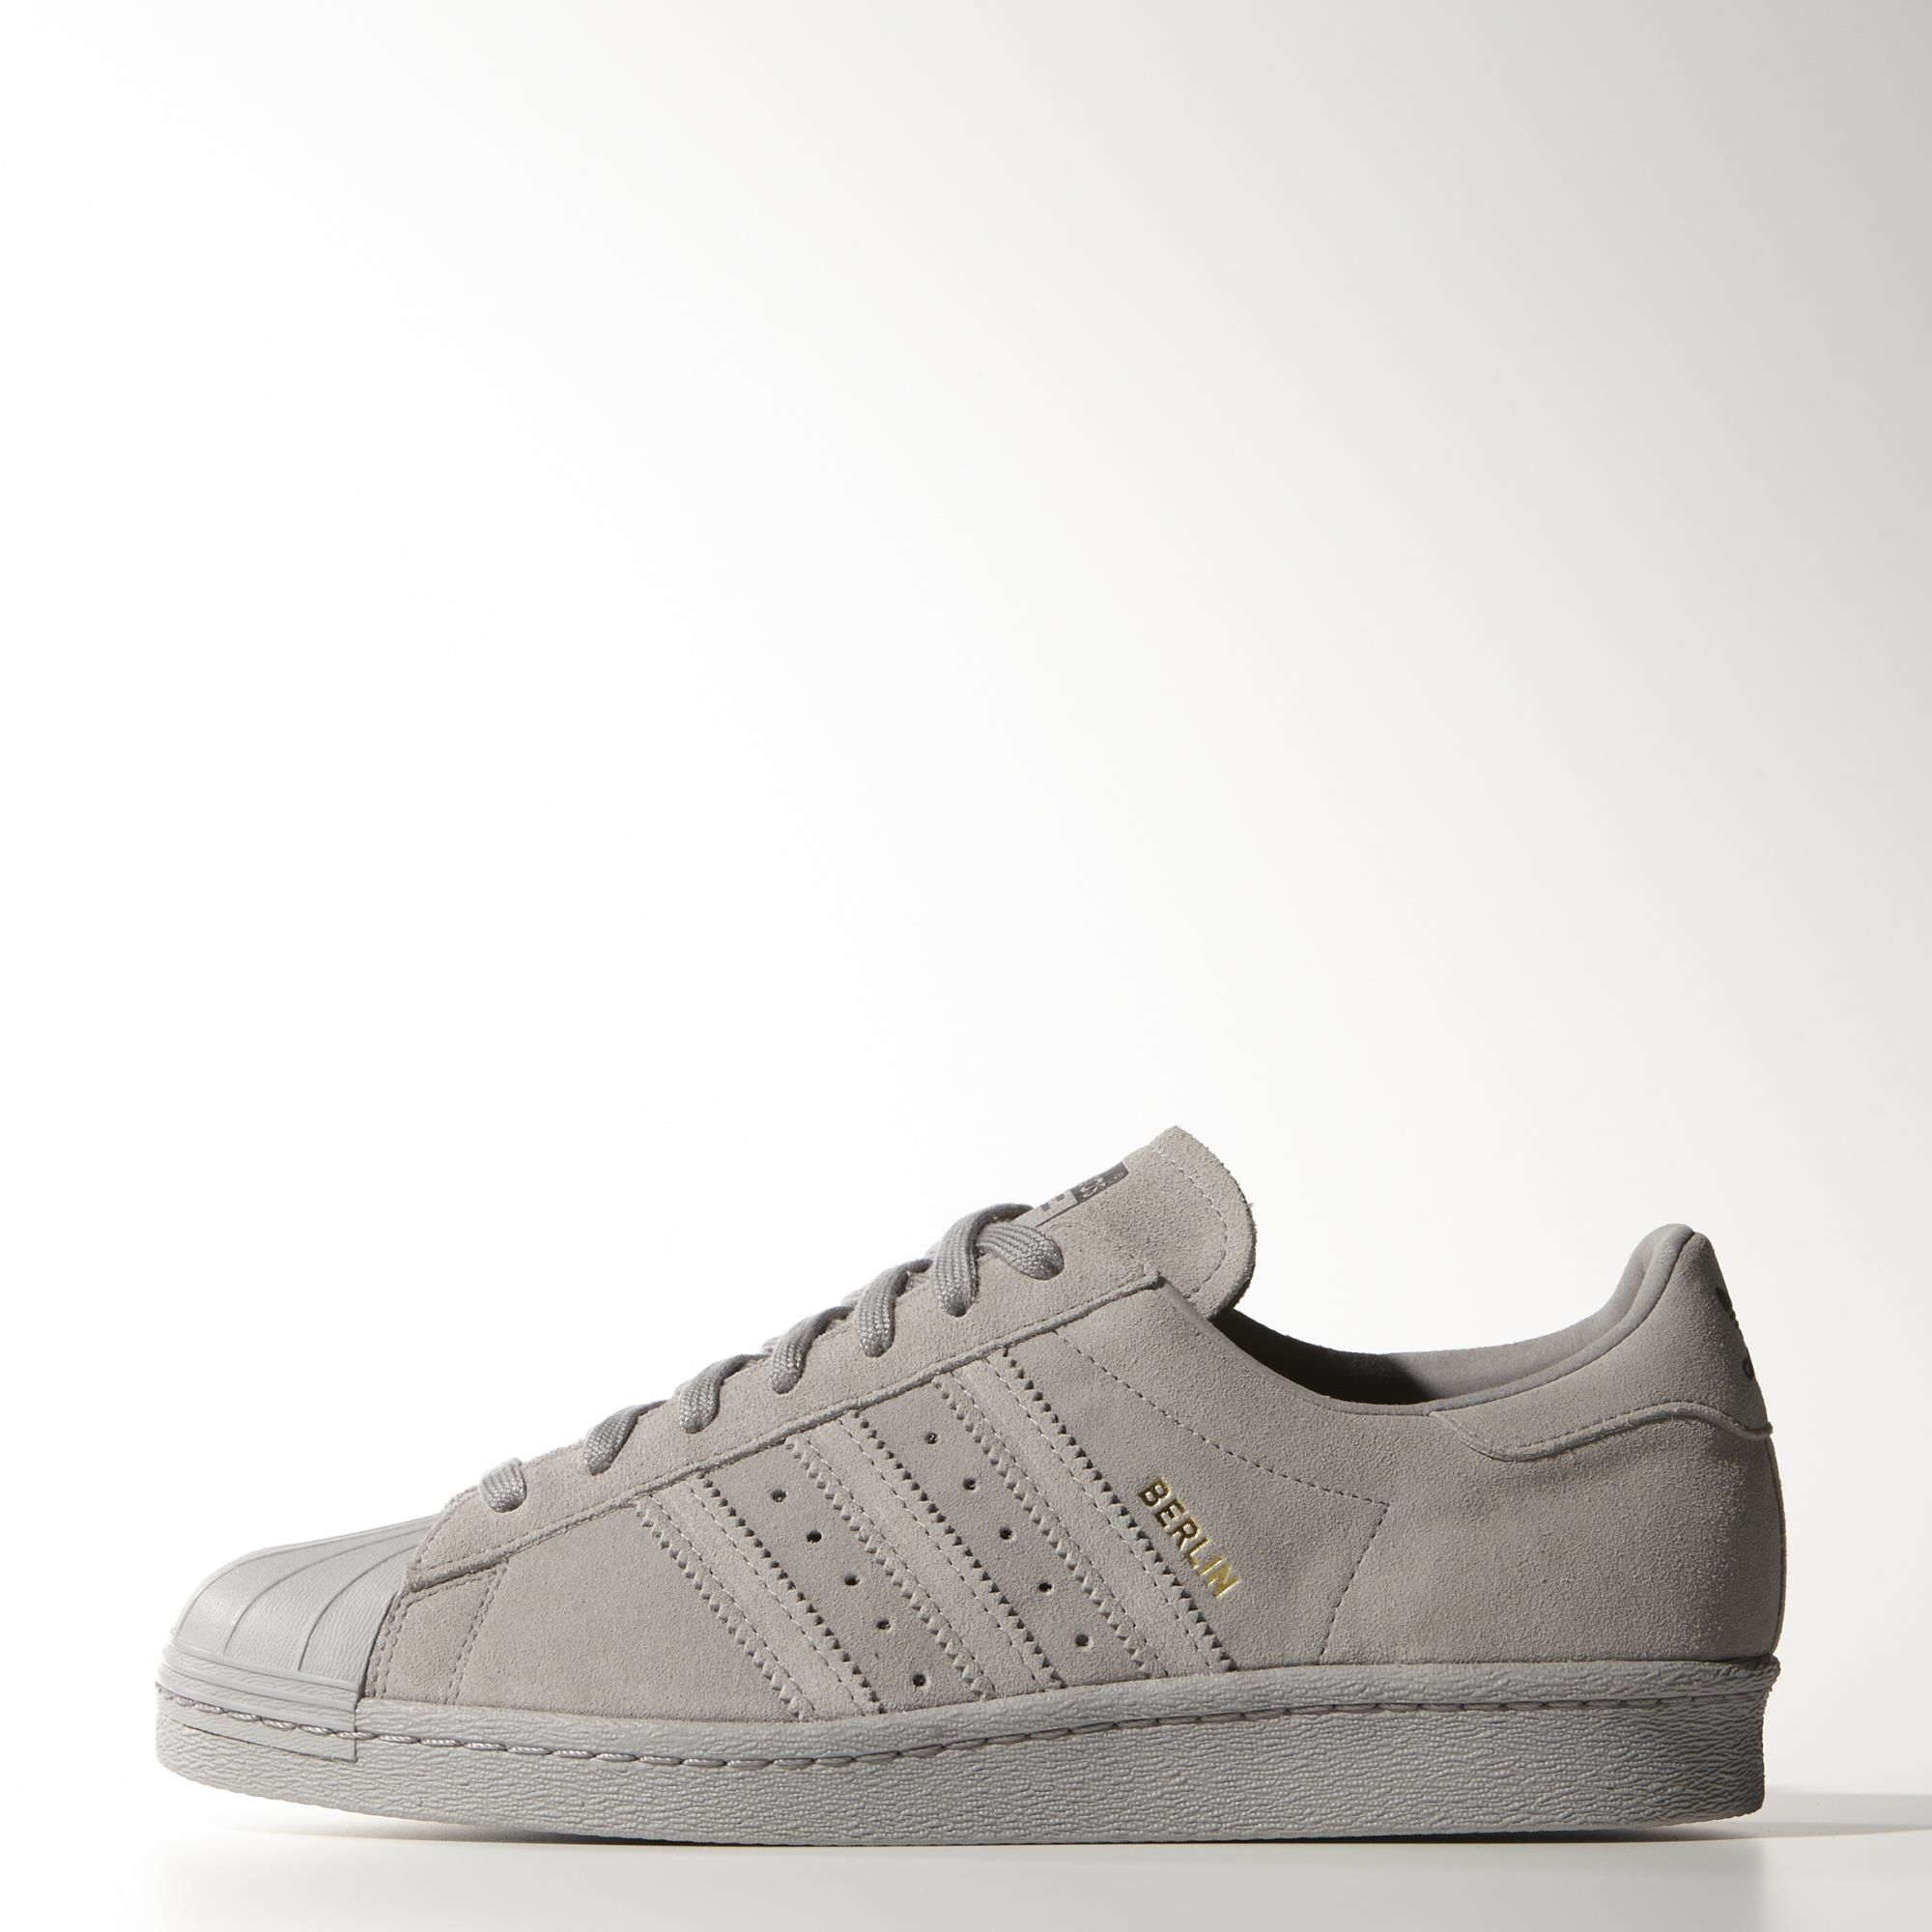 adidas Superstar 80s Berlin Shoes - Grey | adidas US